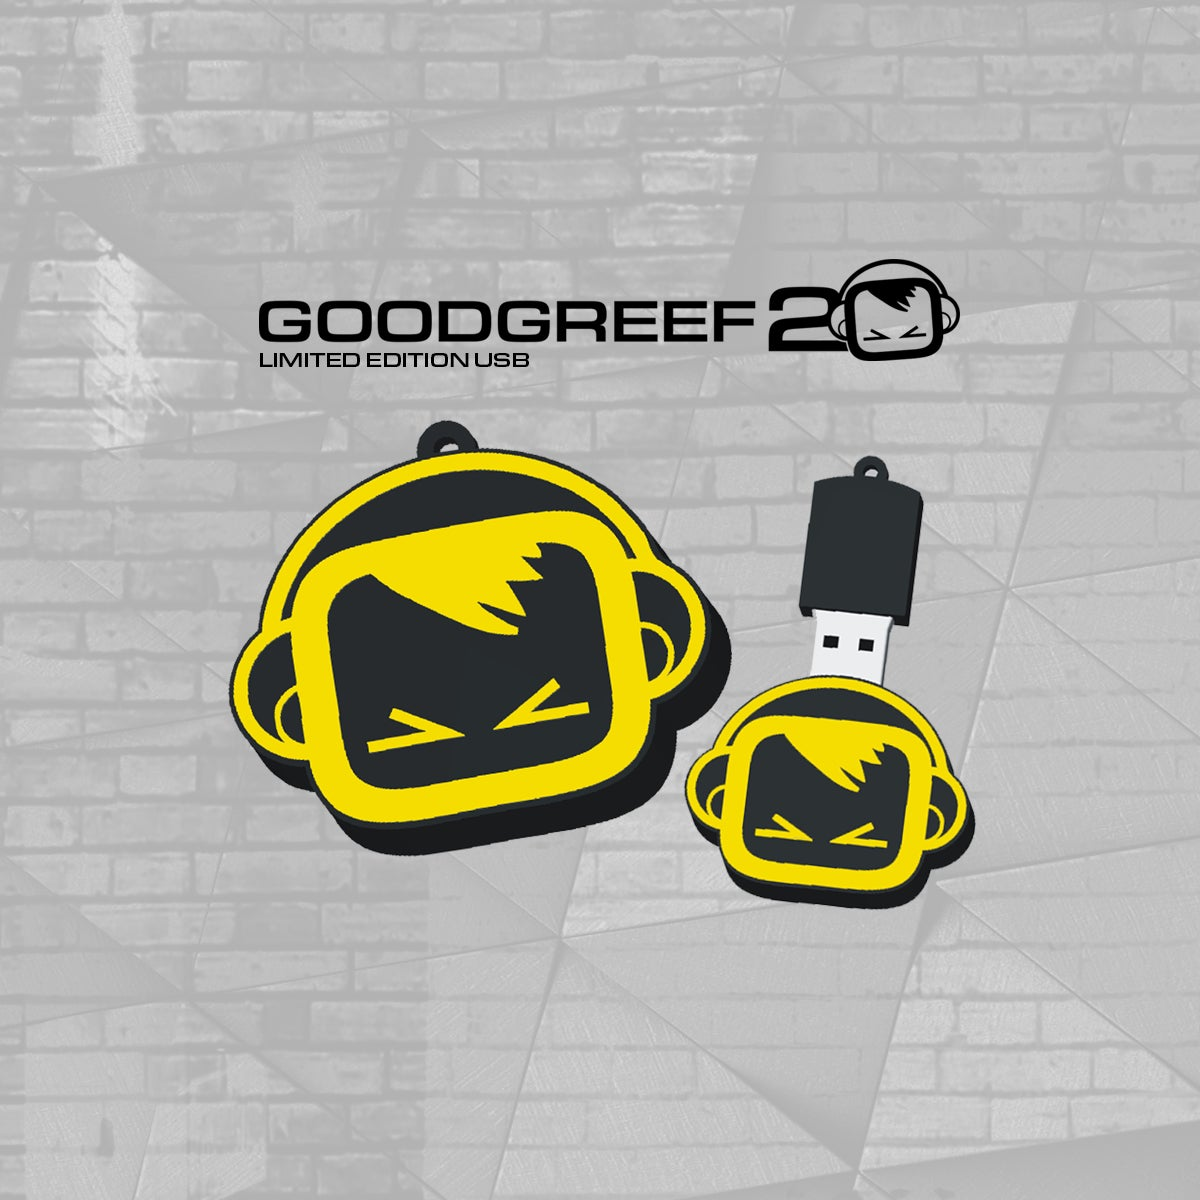 Image of 20 Years of Goodgreef - Limited Edition 64GB USB Stick